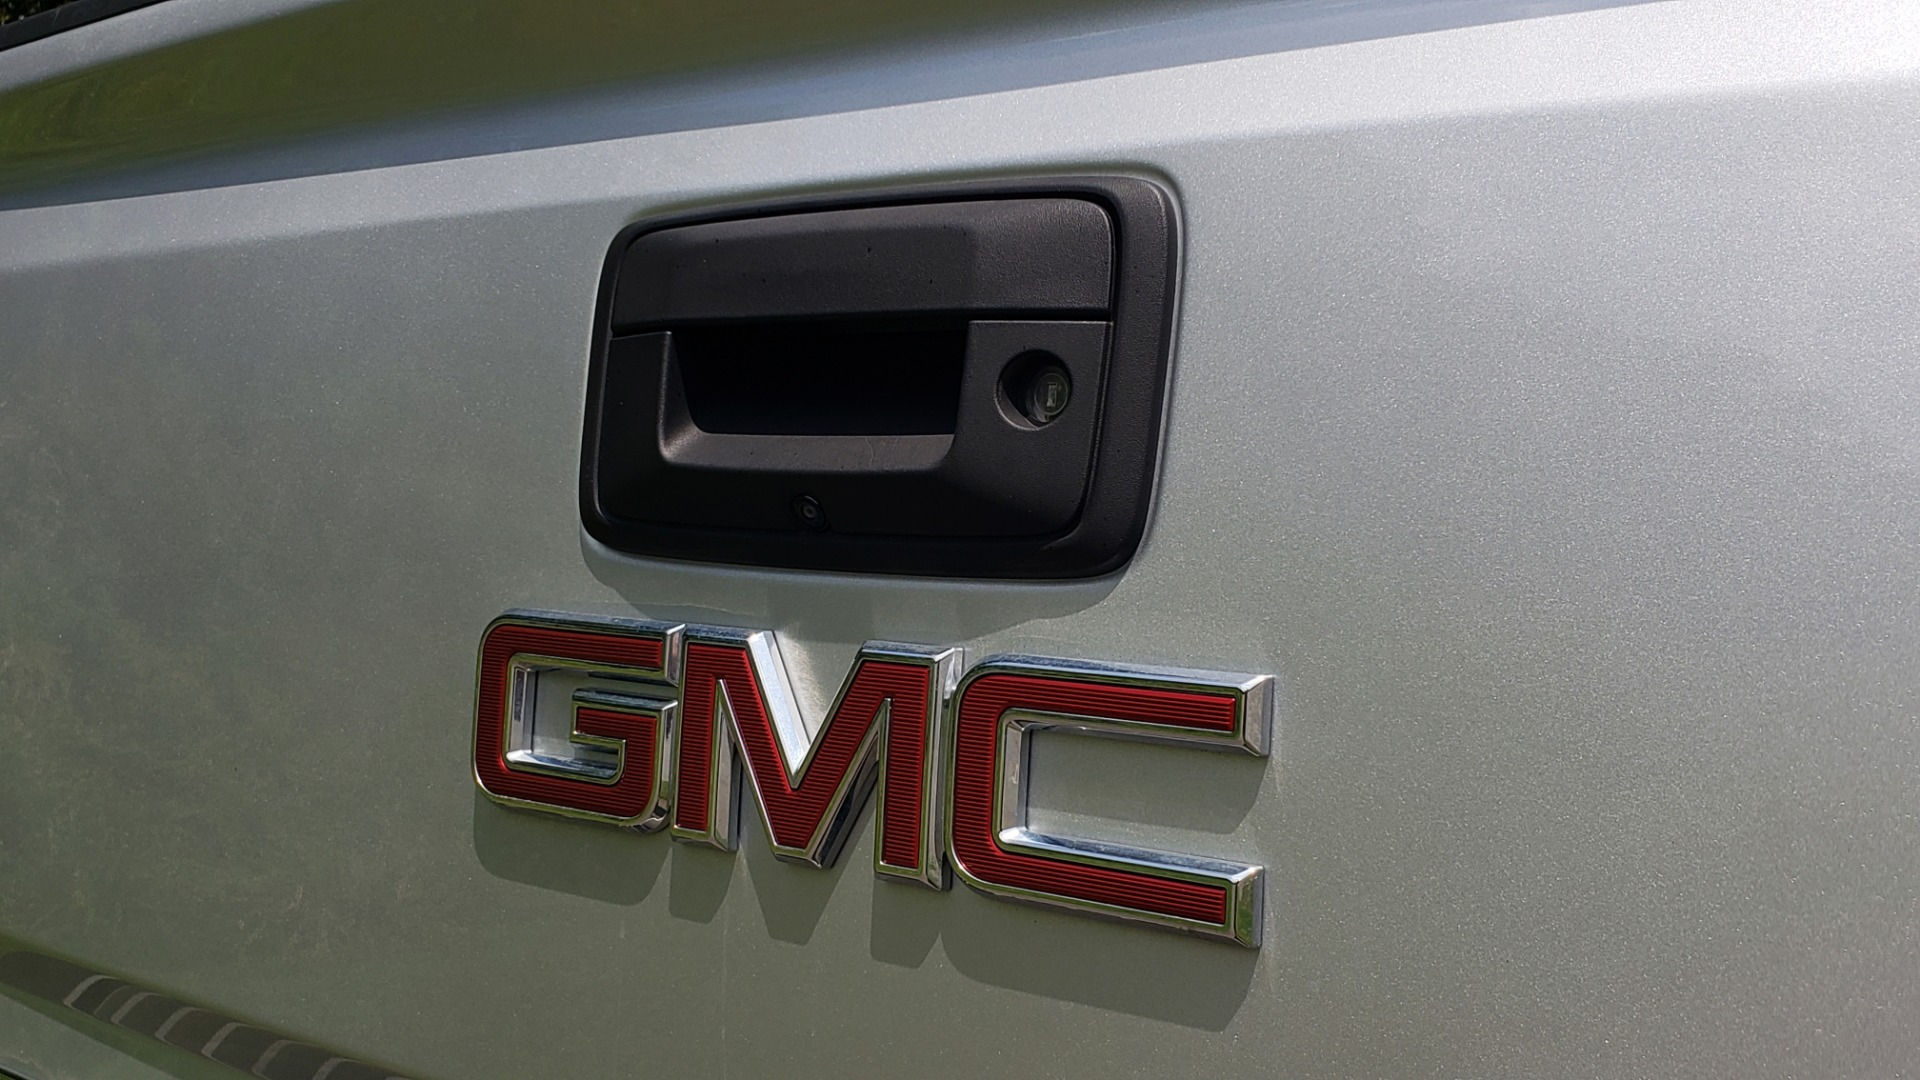 Used 2018 GMC SIERRA 2500HD DENALI 4WD / 6.6L DURAMAX / NAV / SUNROOF / BOSE / REARVIEW for sale Sold at Formula Imports in Charlotte NC 28227 23